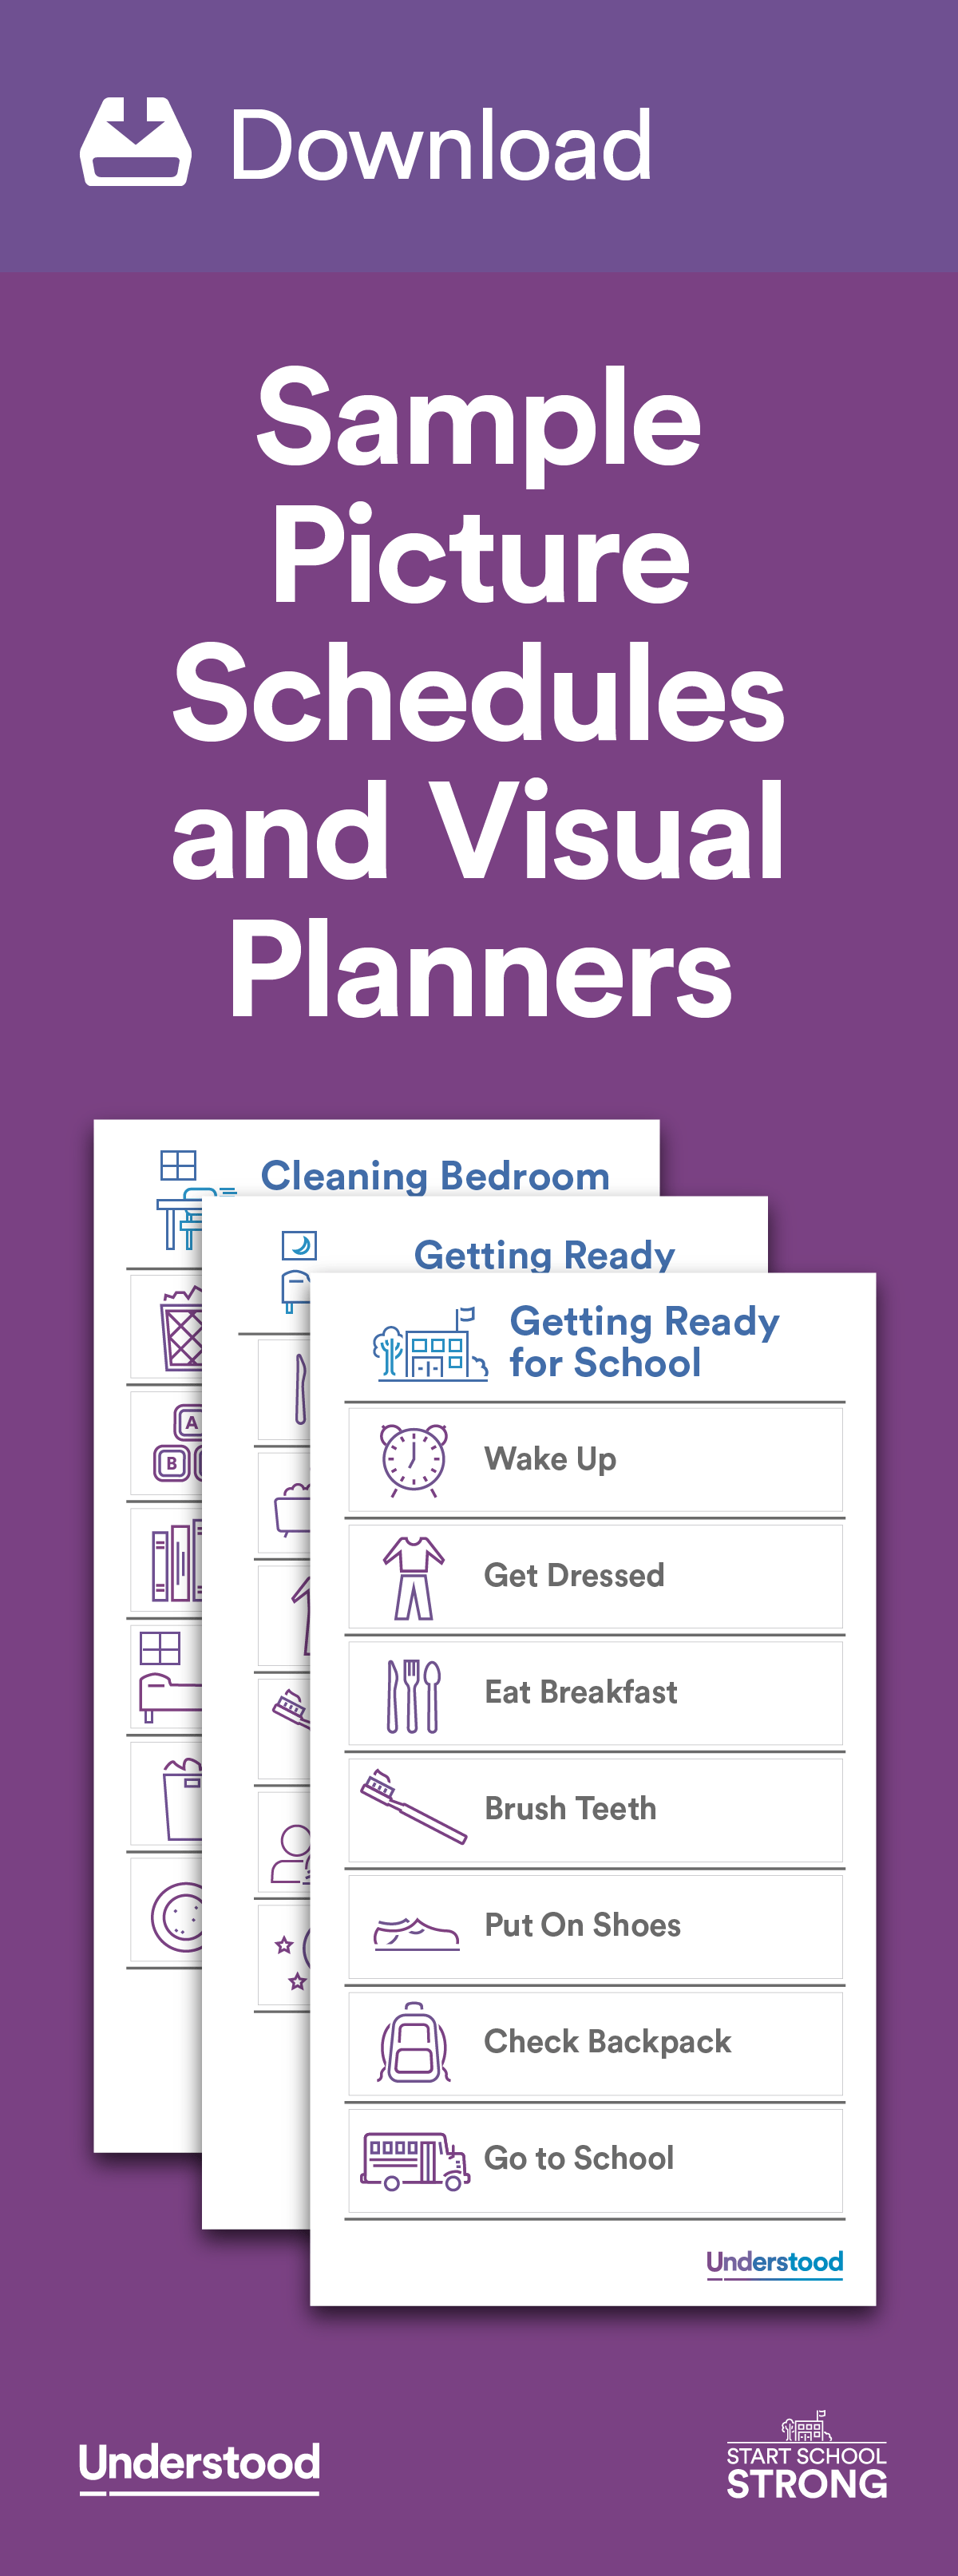 Download Sample Picture Schedules And Visual Planners